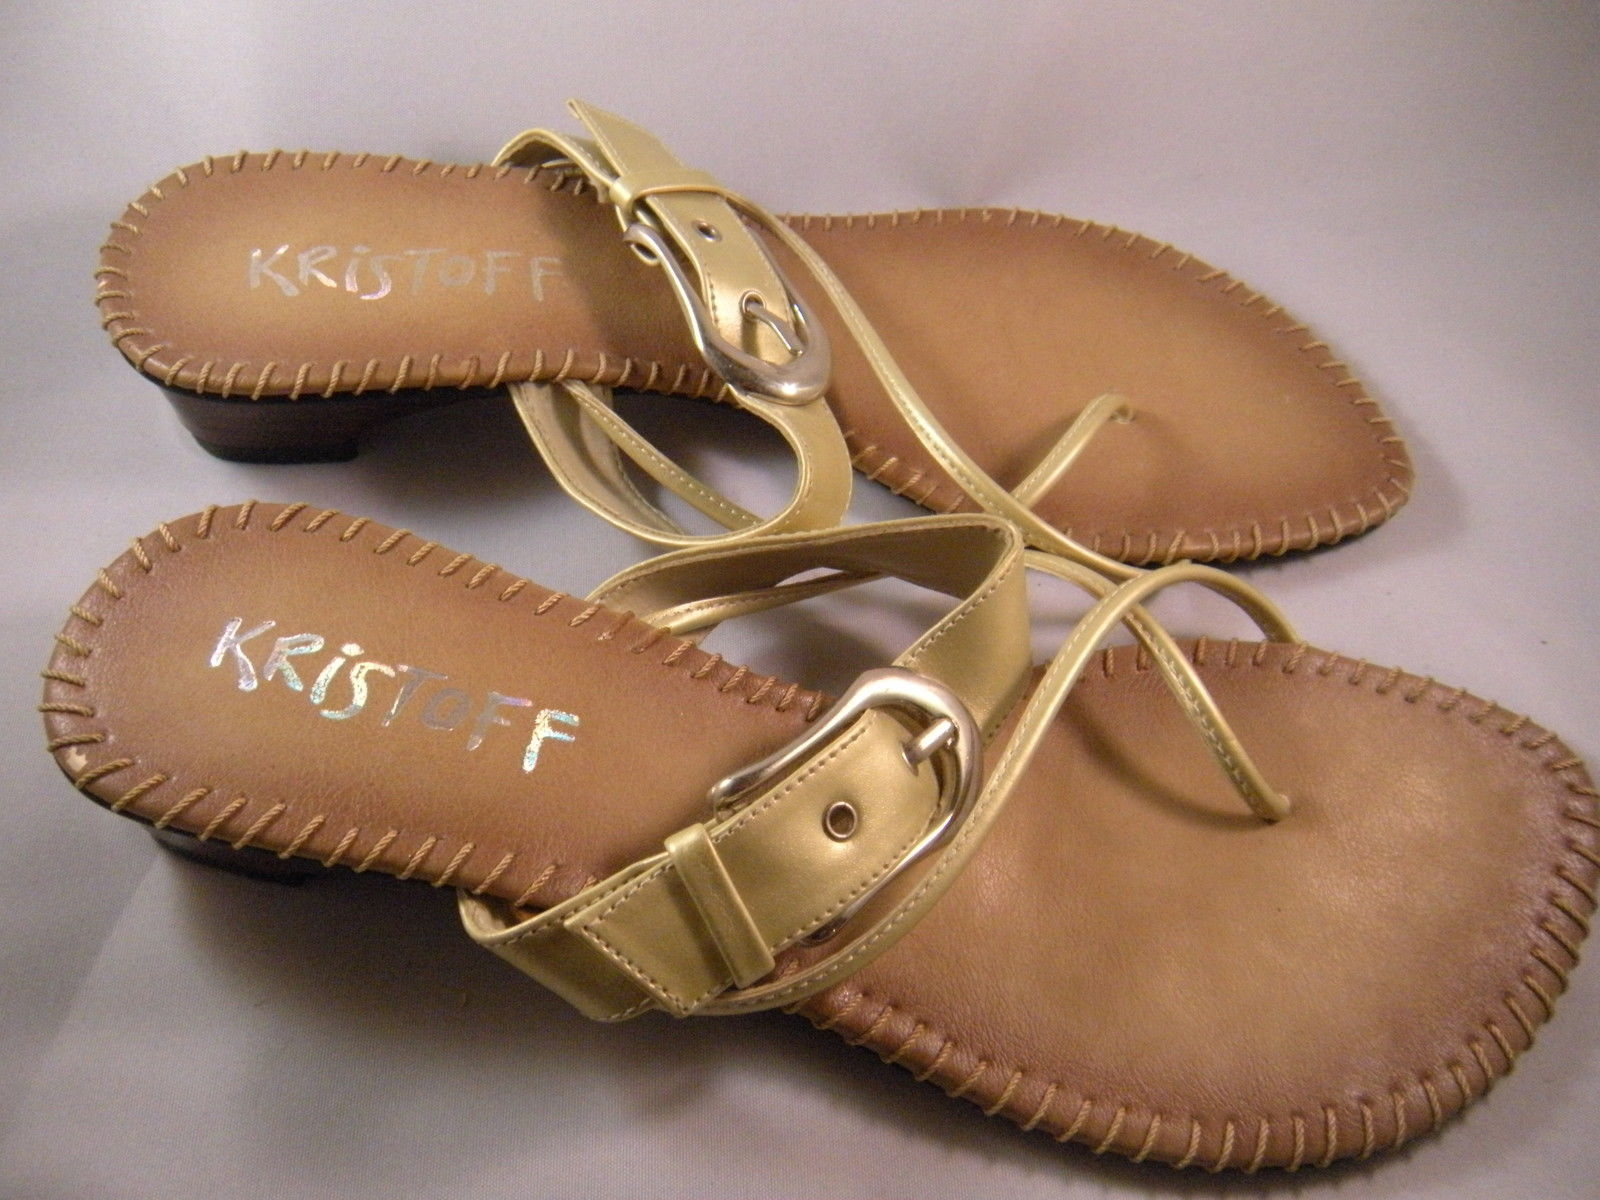 Primary image for KRISTOFF Womens Sandals Gold Trim  Womens Size 8-8.5  NEW